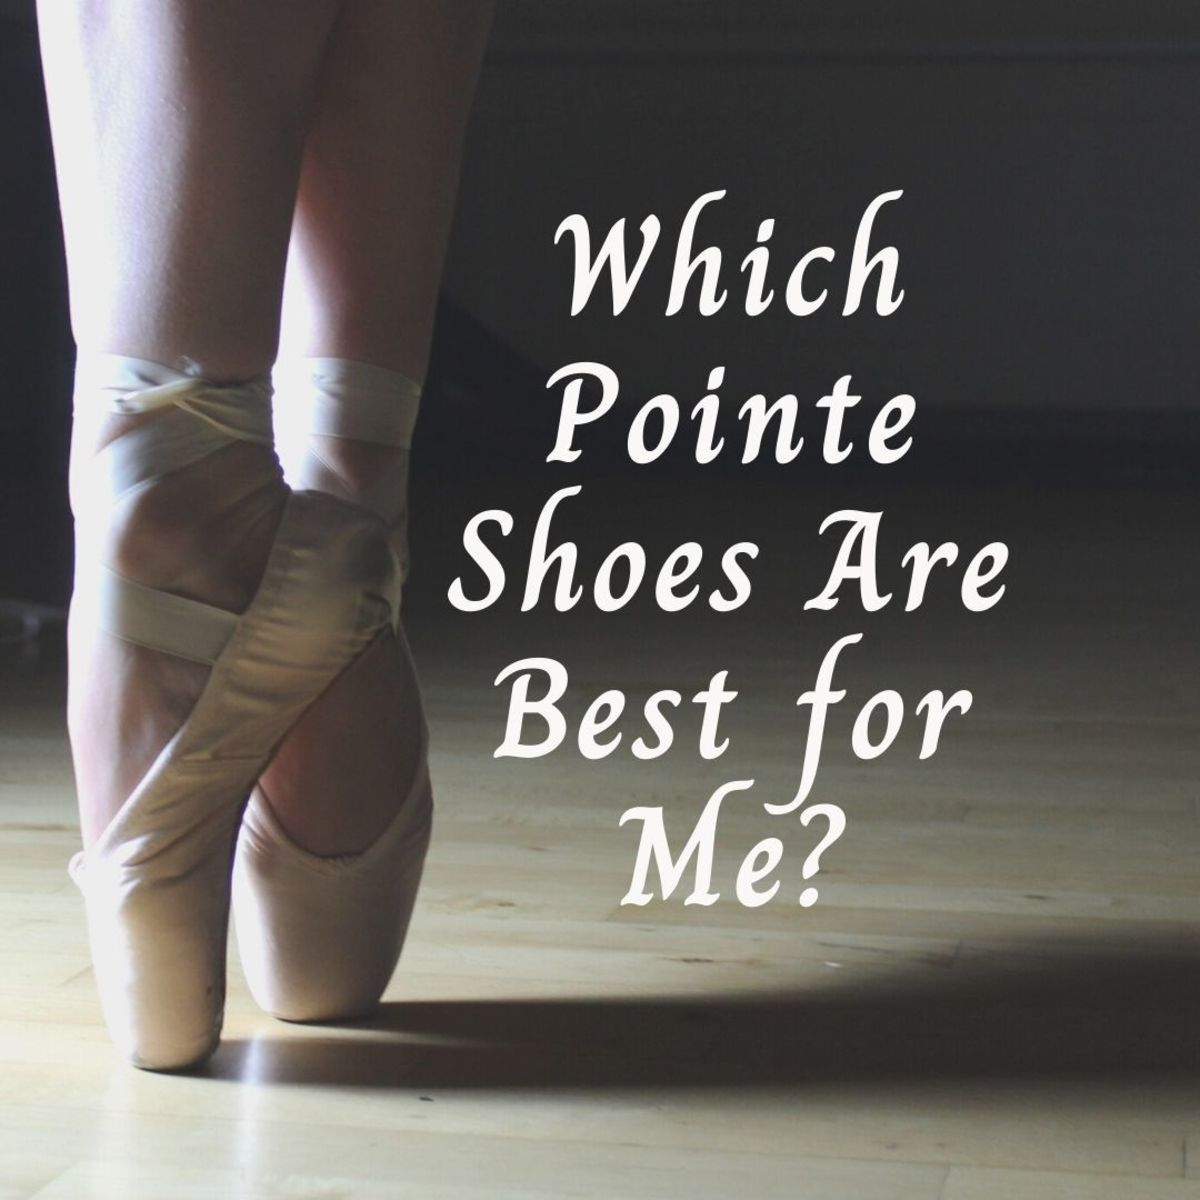 Foot Shape: Which Pointe Shoes Fit Better for My Feet?